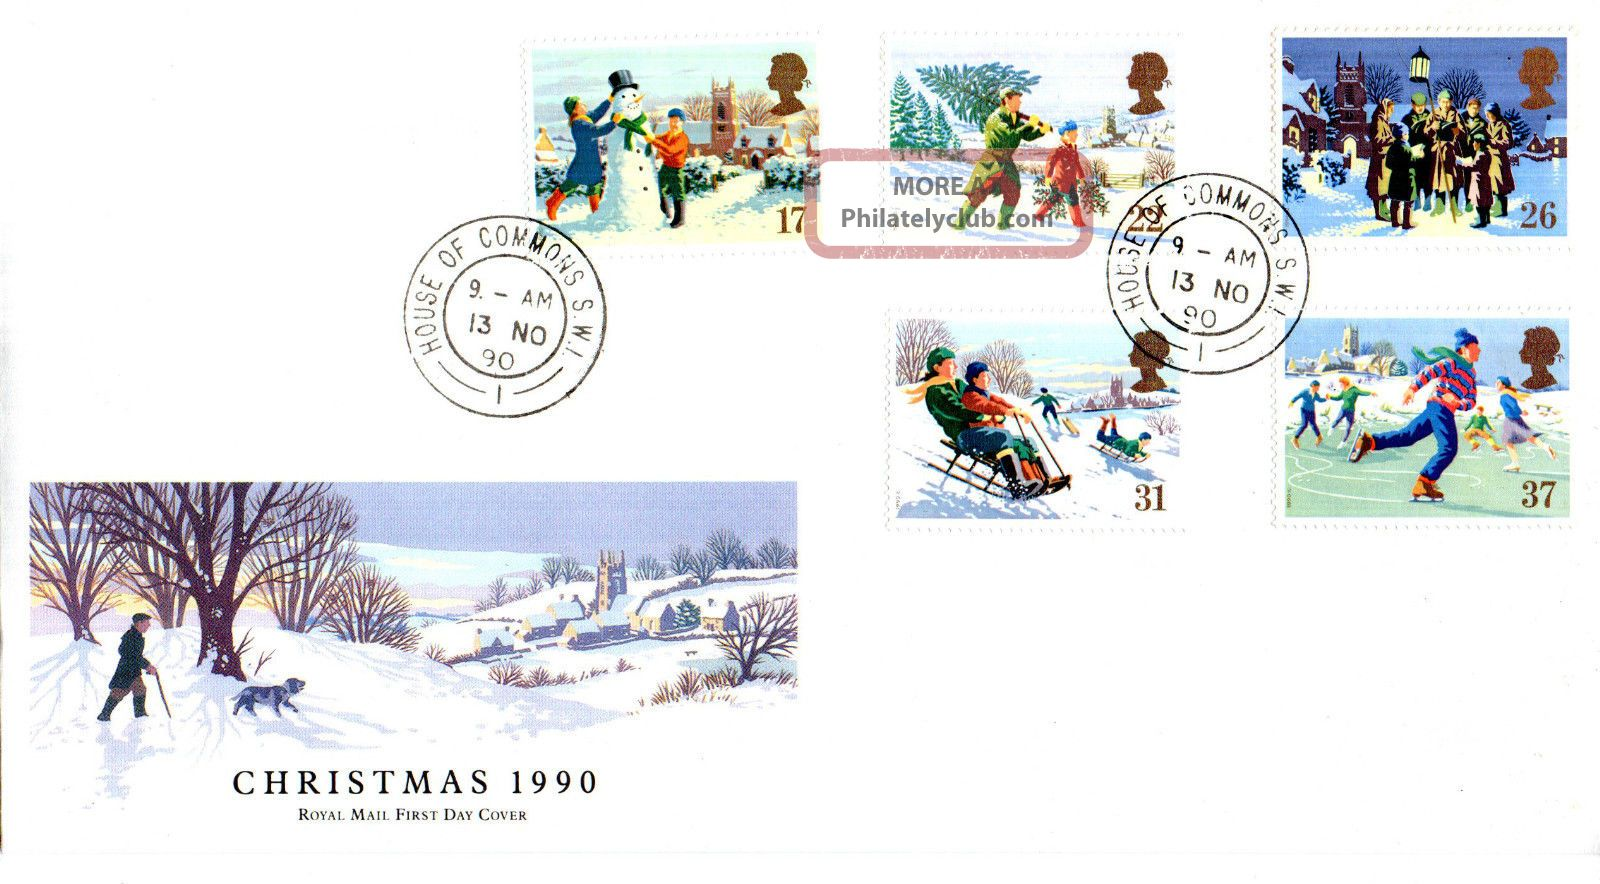 13 November 1990 Christmas Royal Mail First Day Cover House Of Commons Sw1 Cds Topical Stamps photo